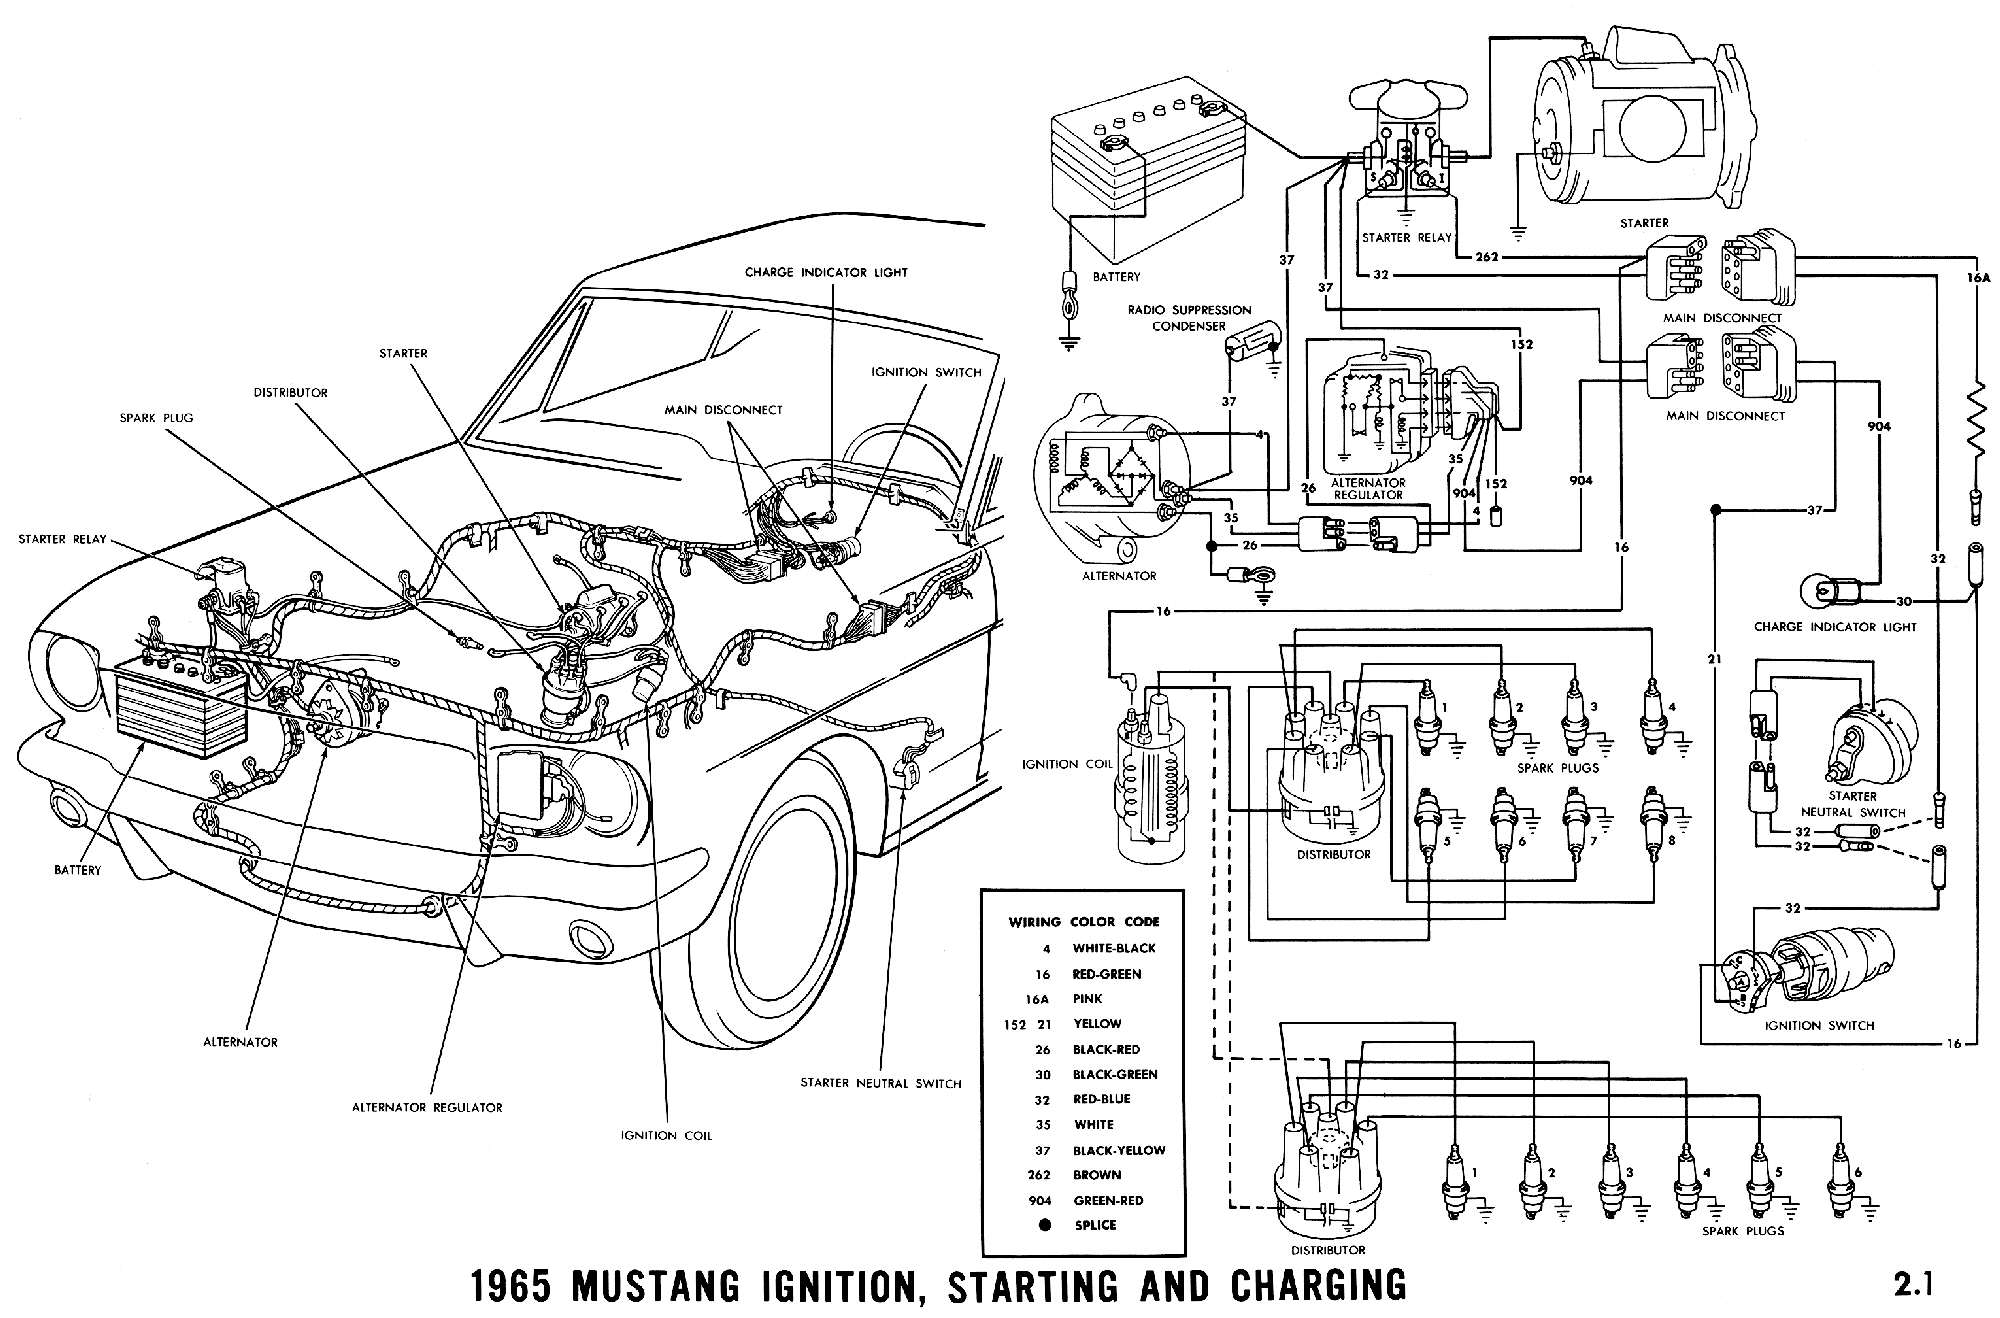 66 mustang wiring diagram free wire data schema u2022 rh cccgroup co  68 mustang horn wiring diagram